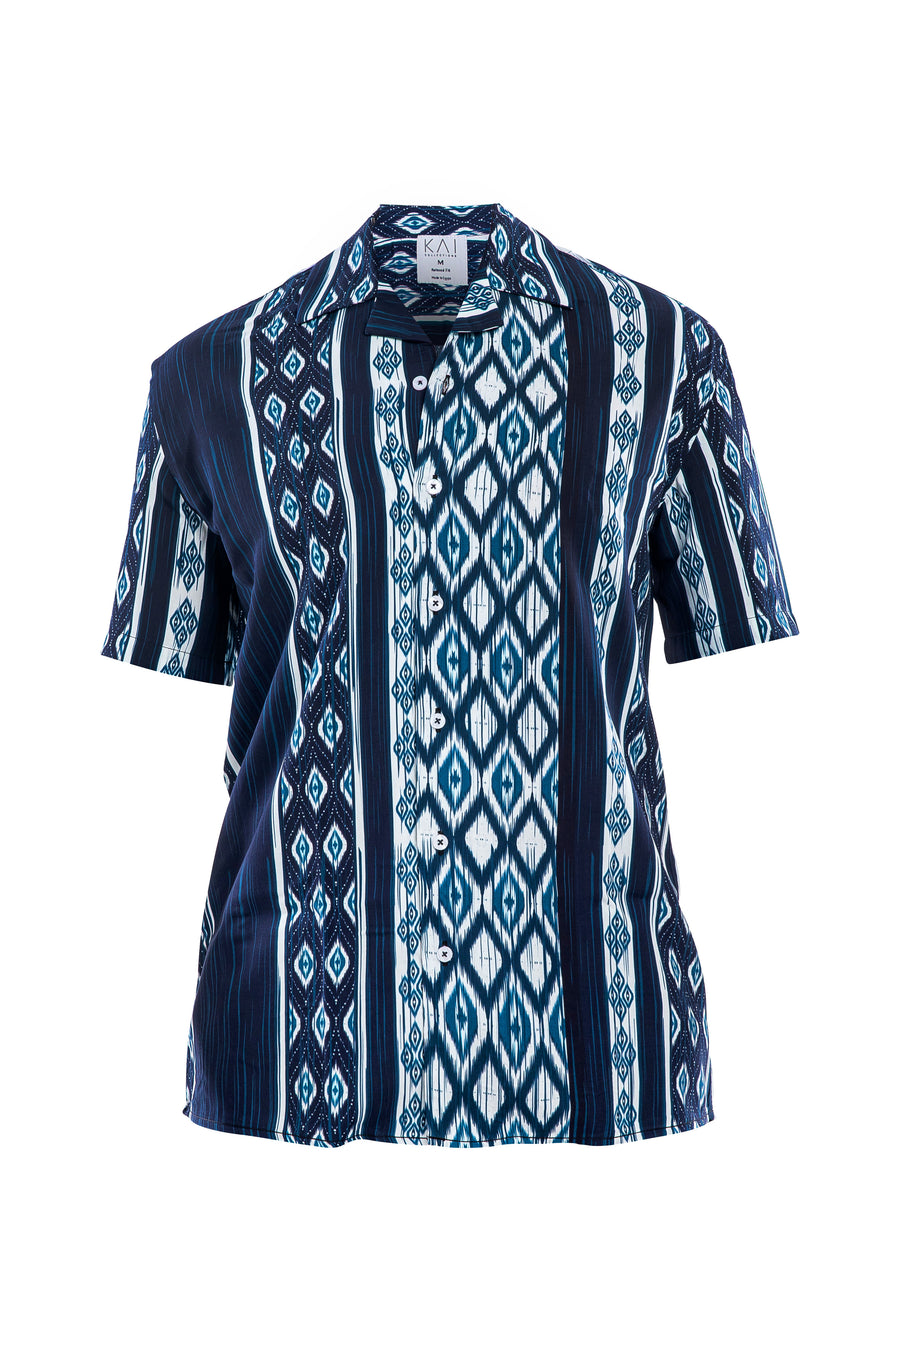 Blue Tribal Shirt